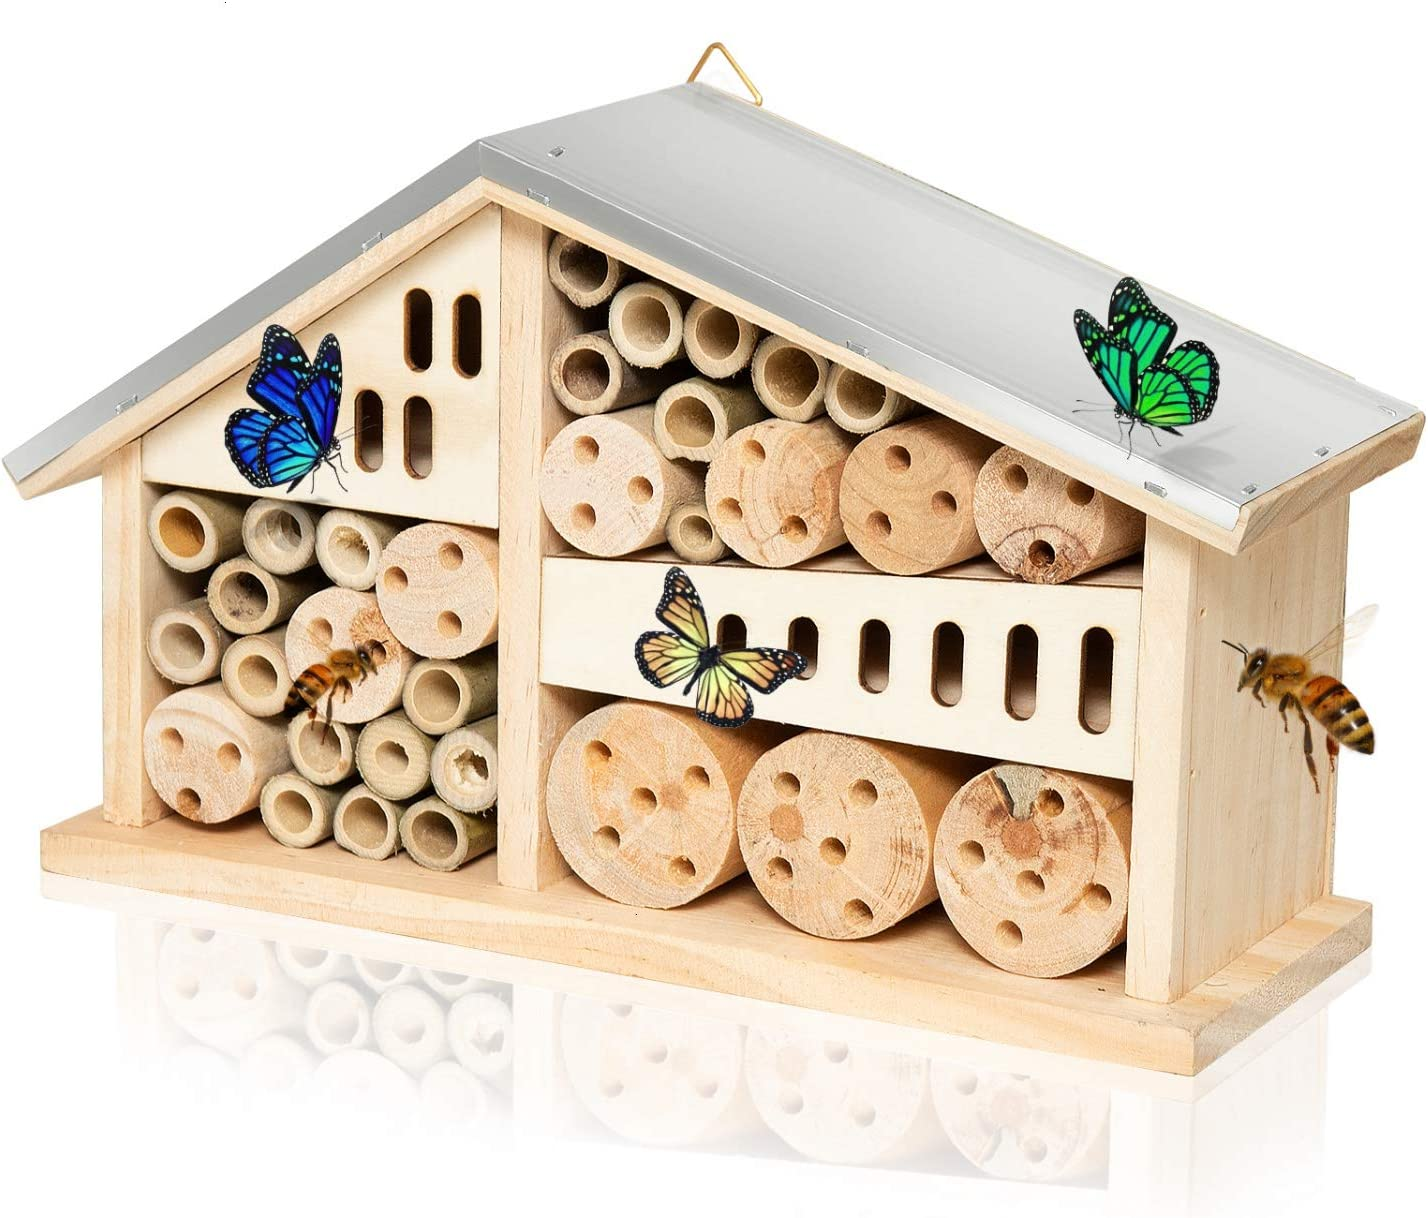 Vumdua Mason Bee House Hotel, Natural Wooden Bee Hive Pollinator Garden House Tube Nest for Mason Bee Bug Insect Butterfly - 10.63 x 3.66 x 6.11 Inch